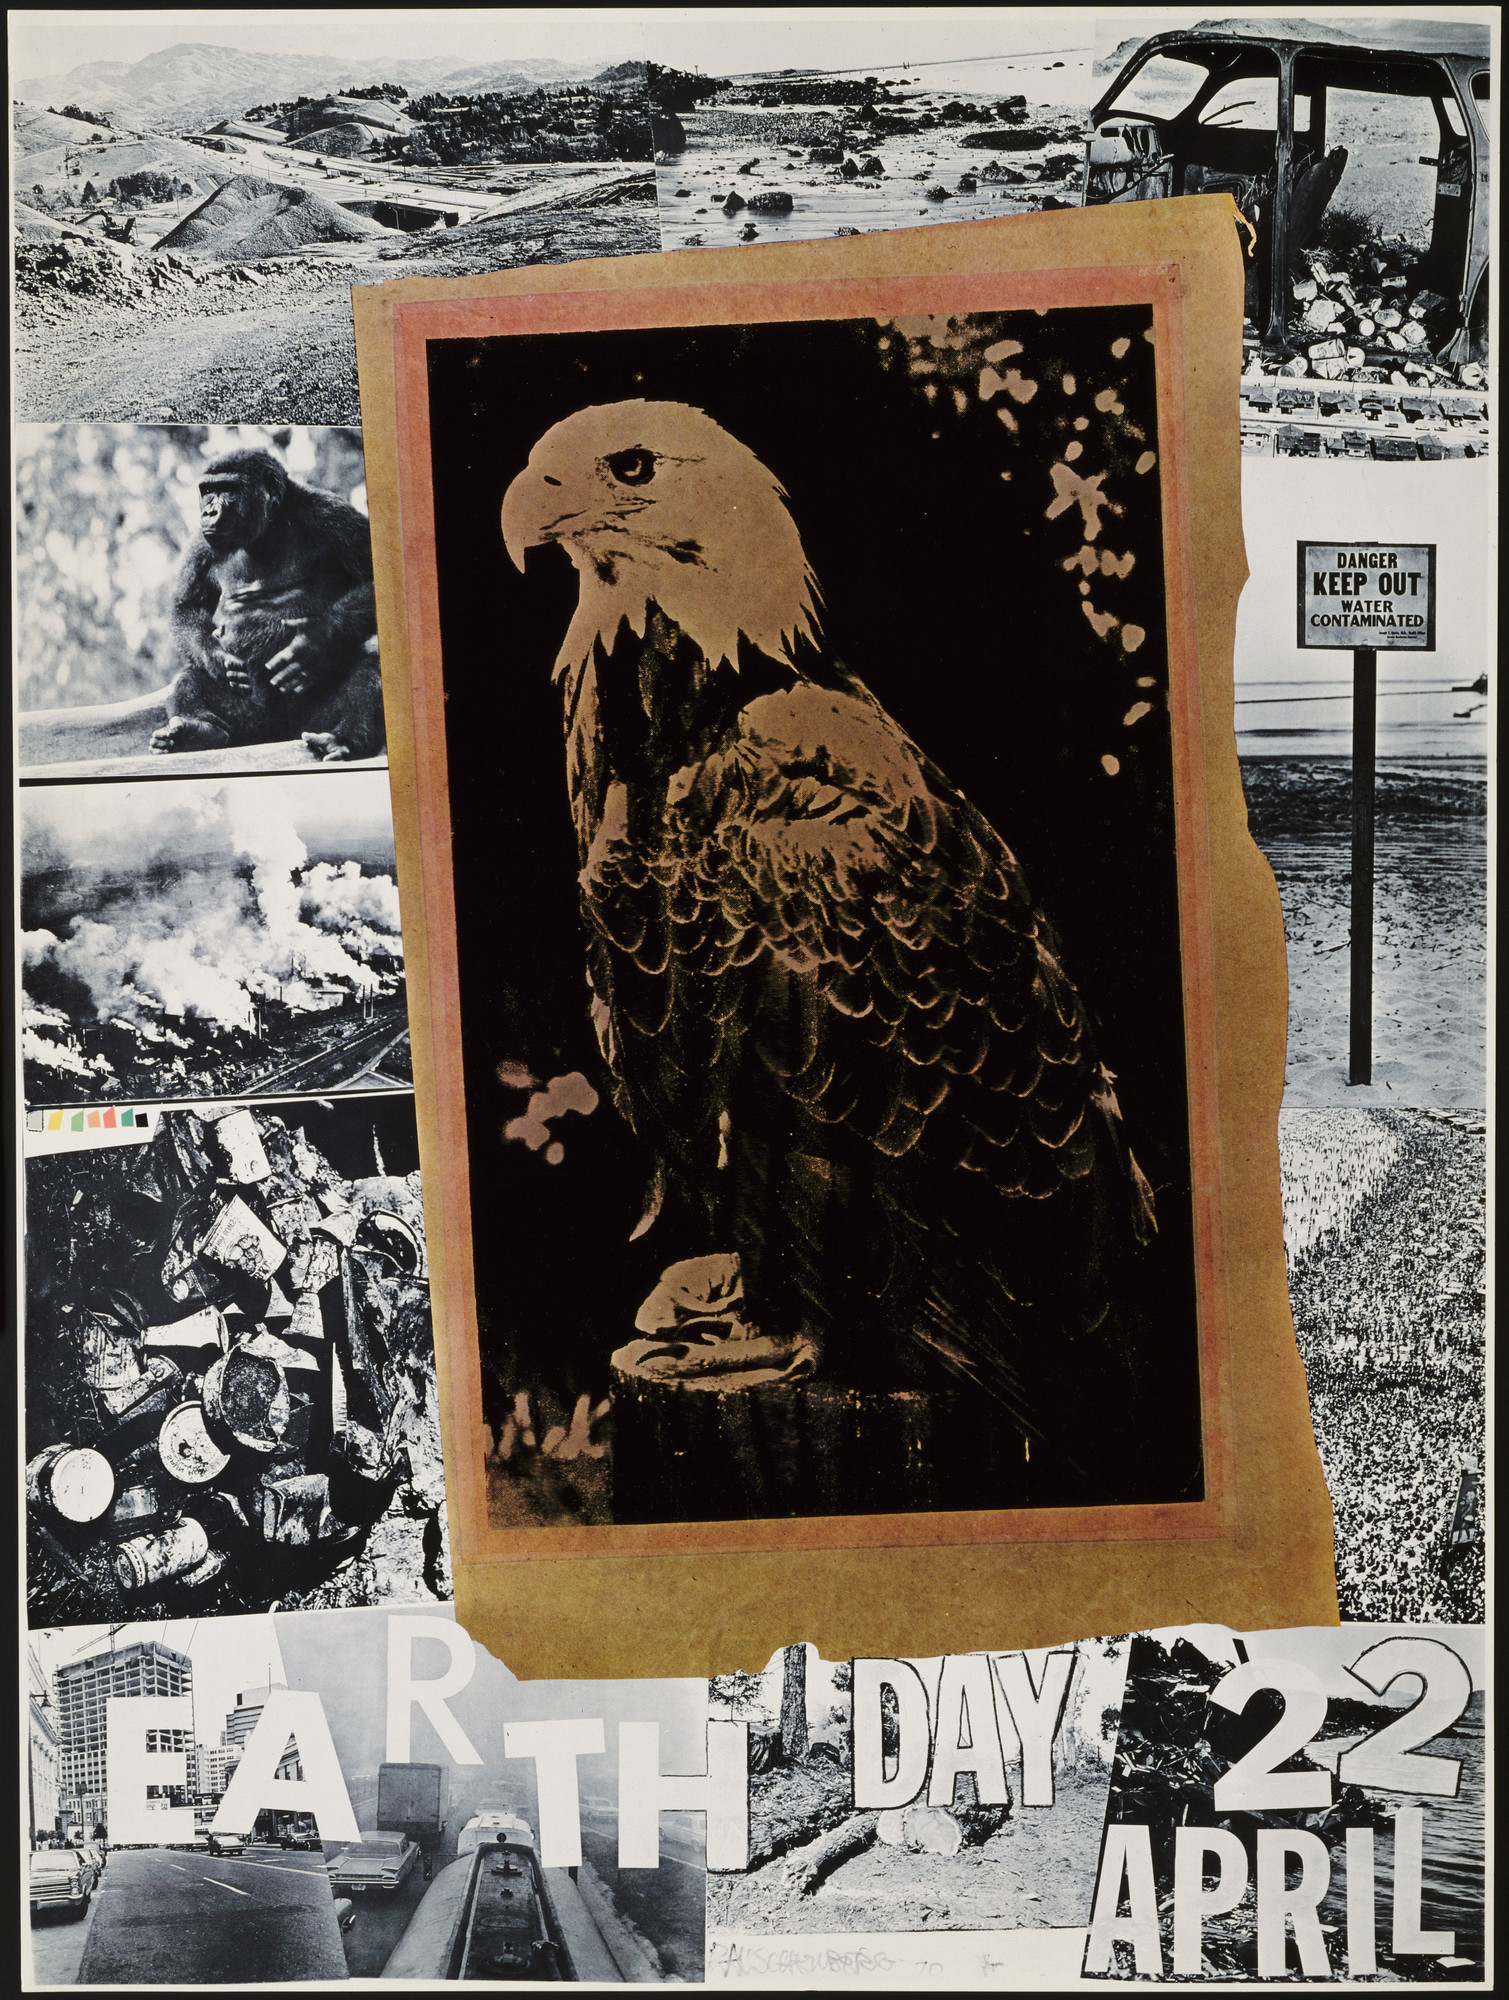 Robert Rauschenberg. Earth Day - 22 April. 1970